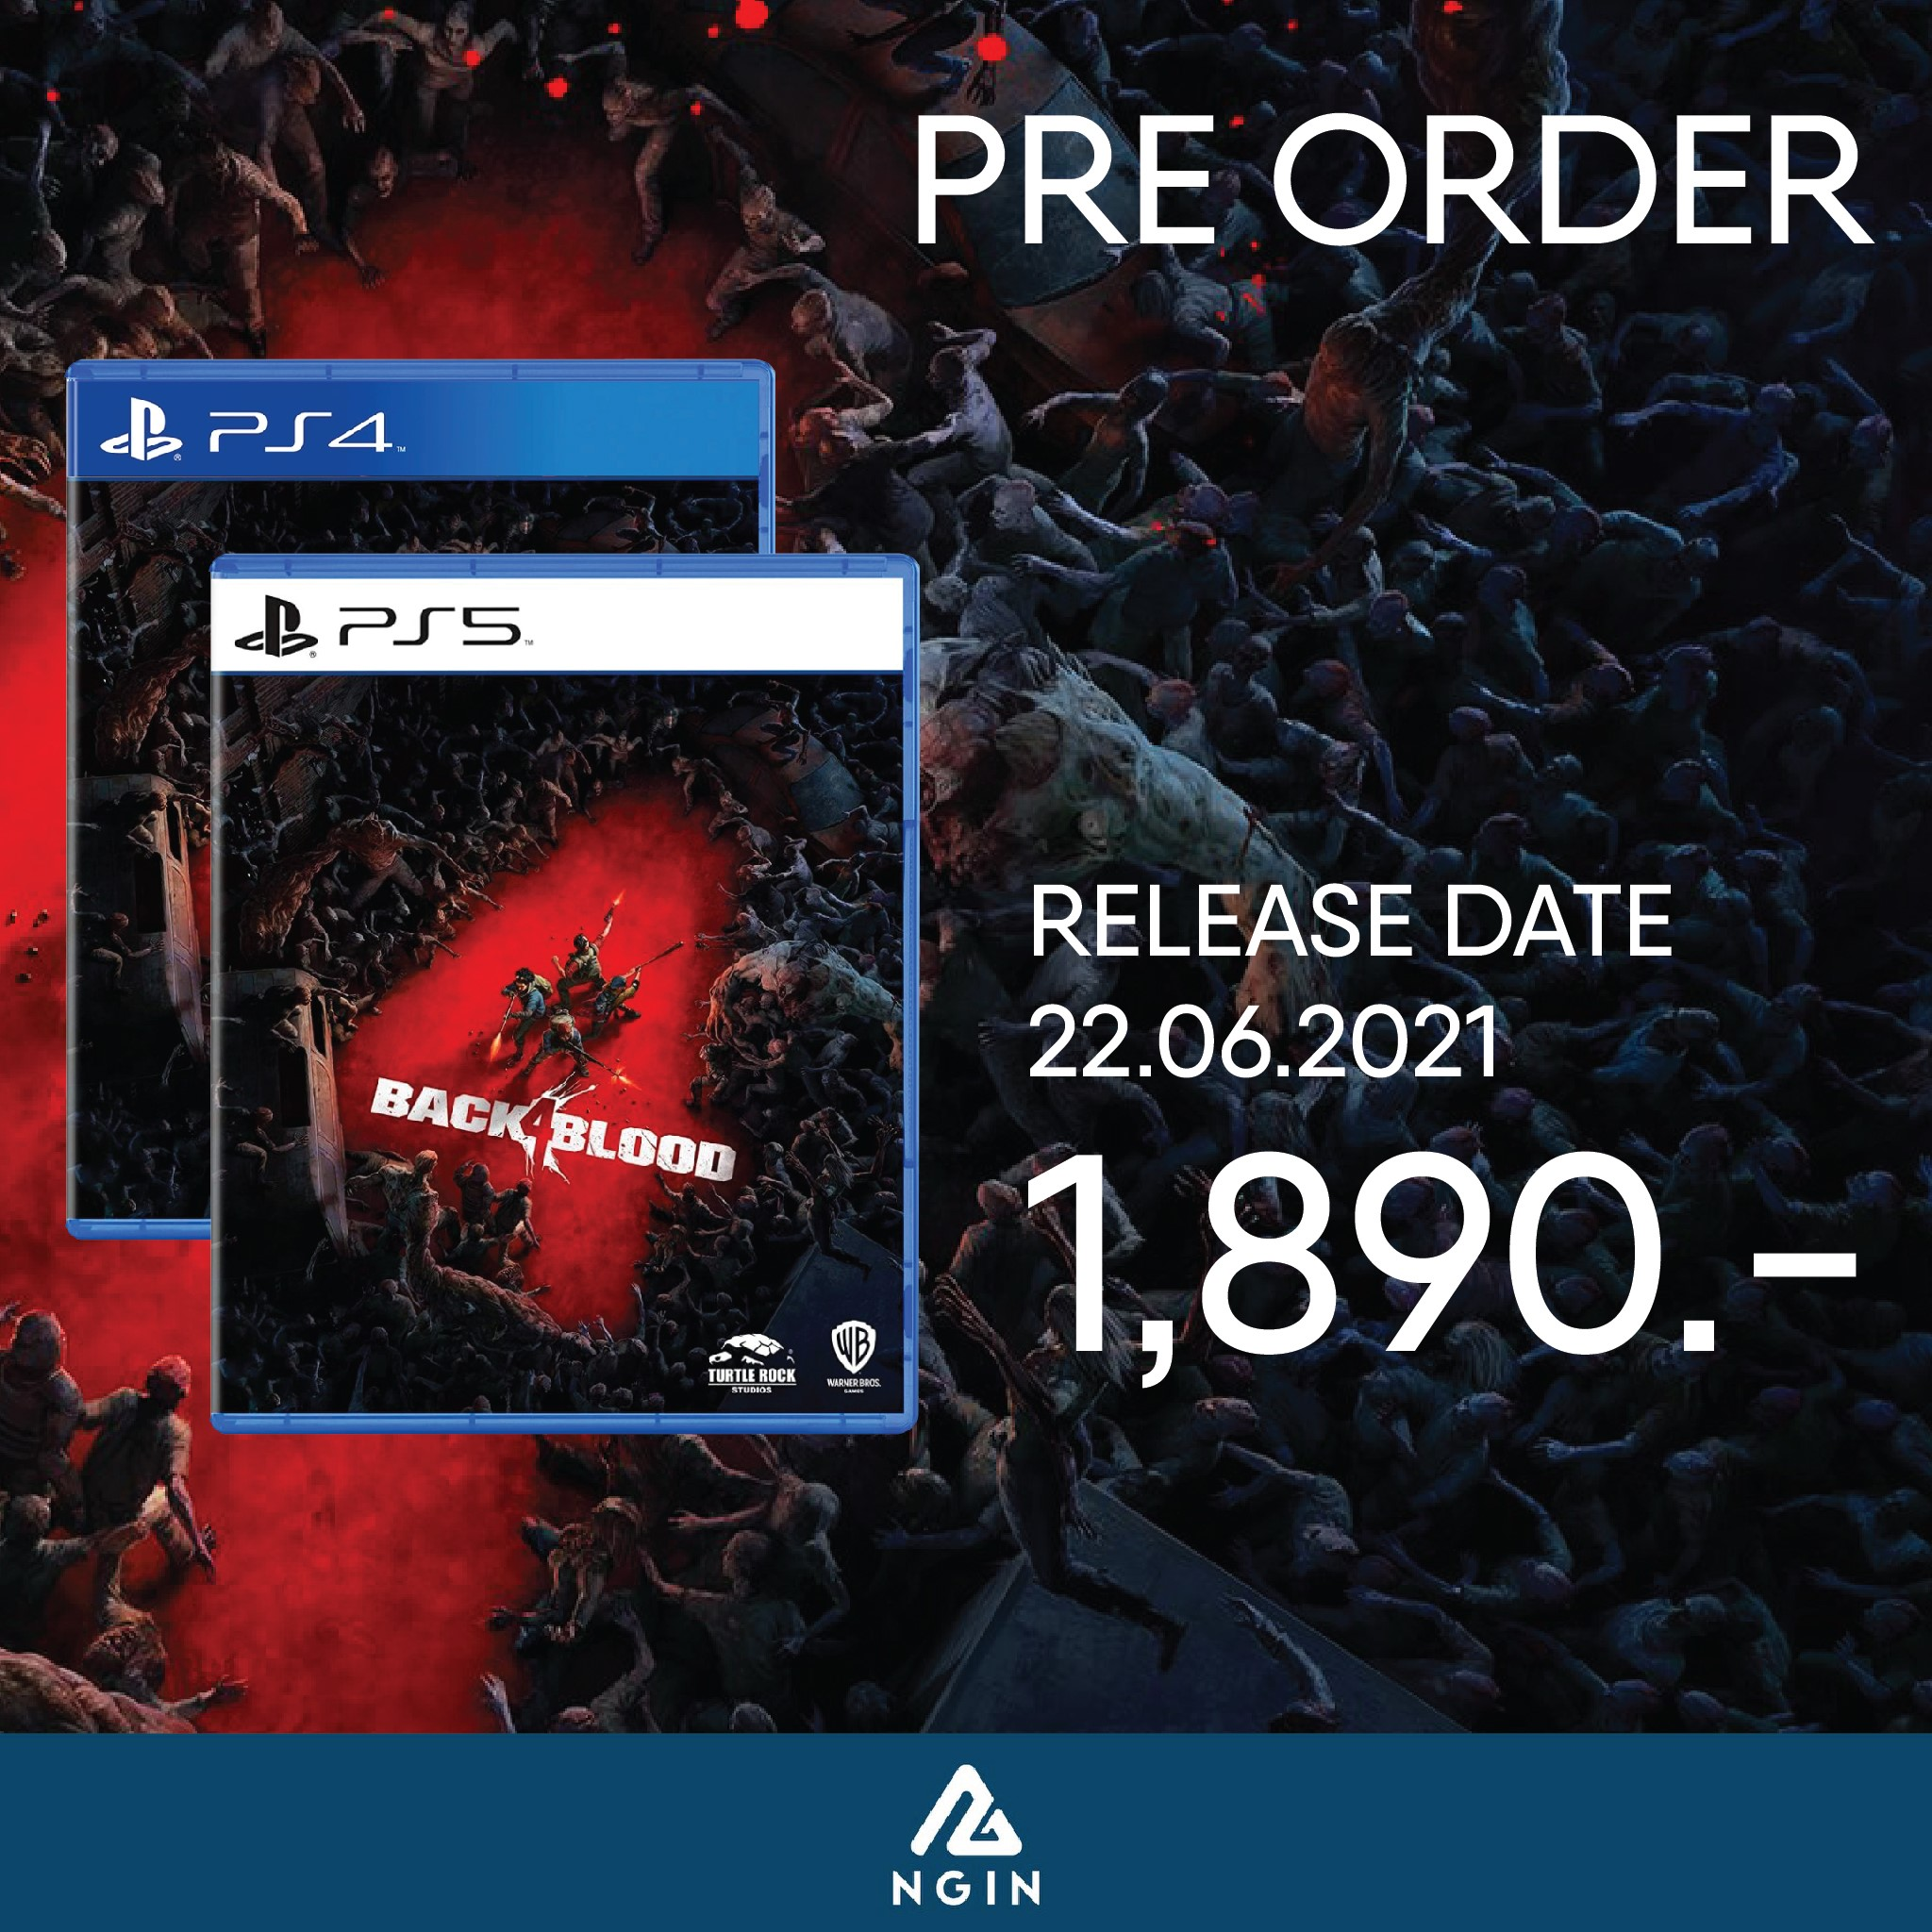 PS4 , PS5 Black 4 Blood